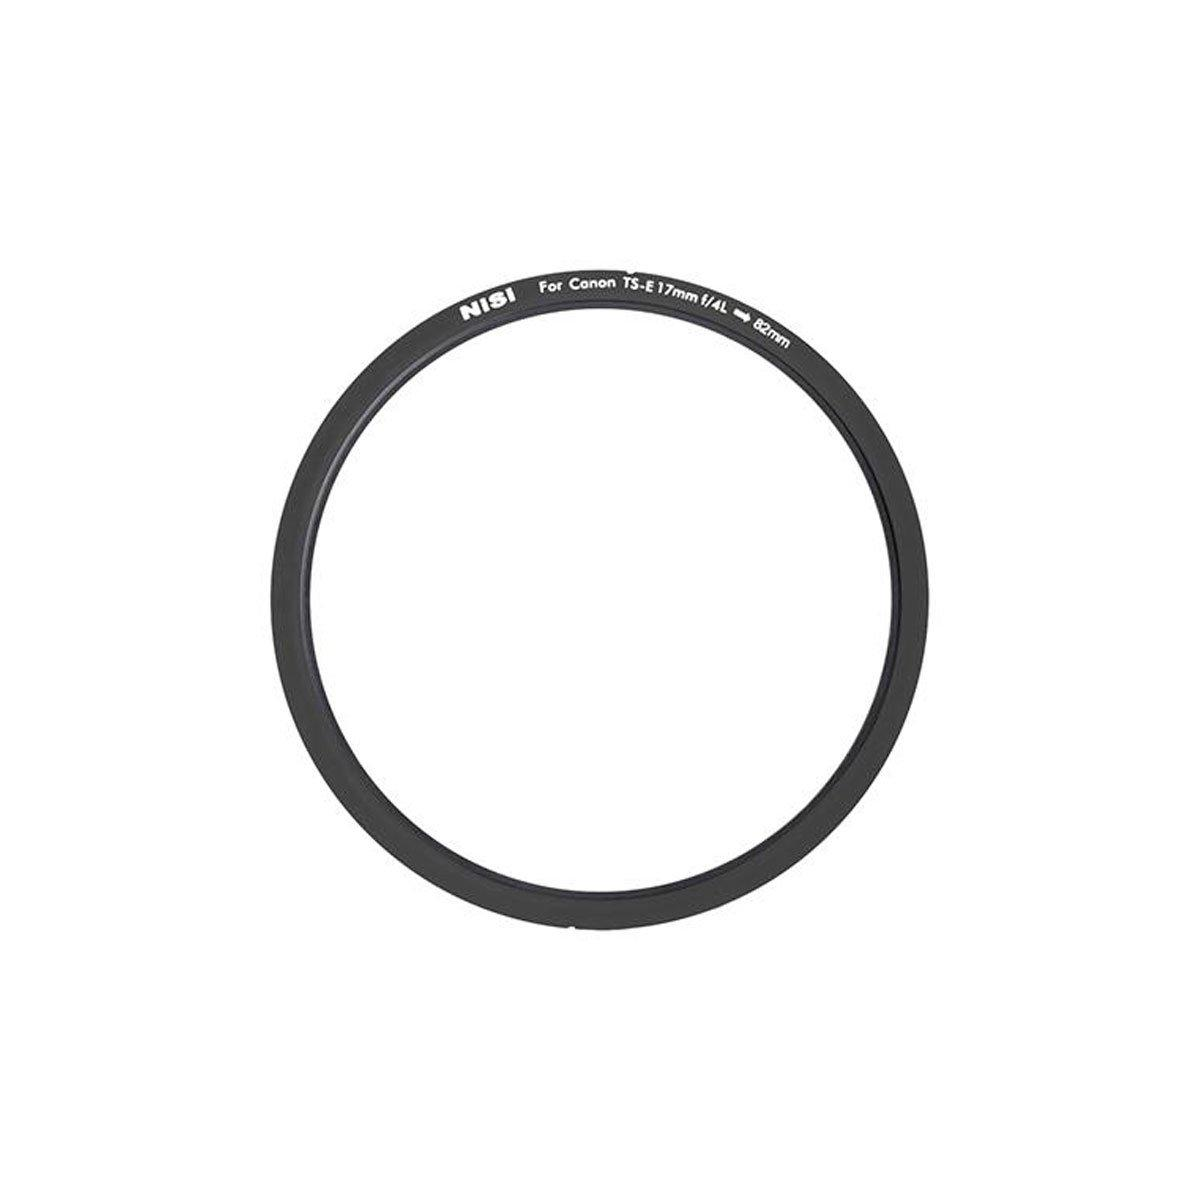 NiSi Filter Adapter Canon TS-E 17mm -> 82mm